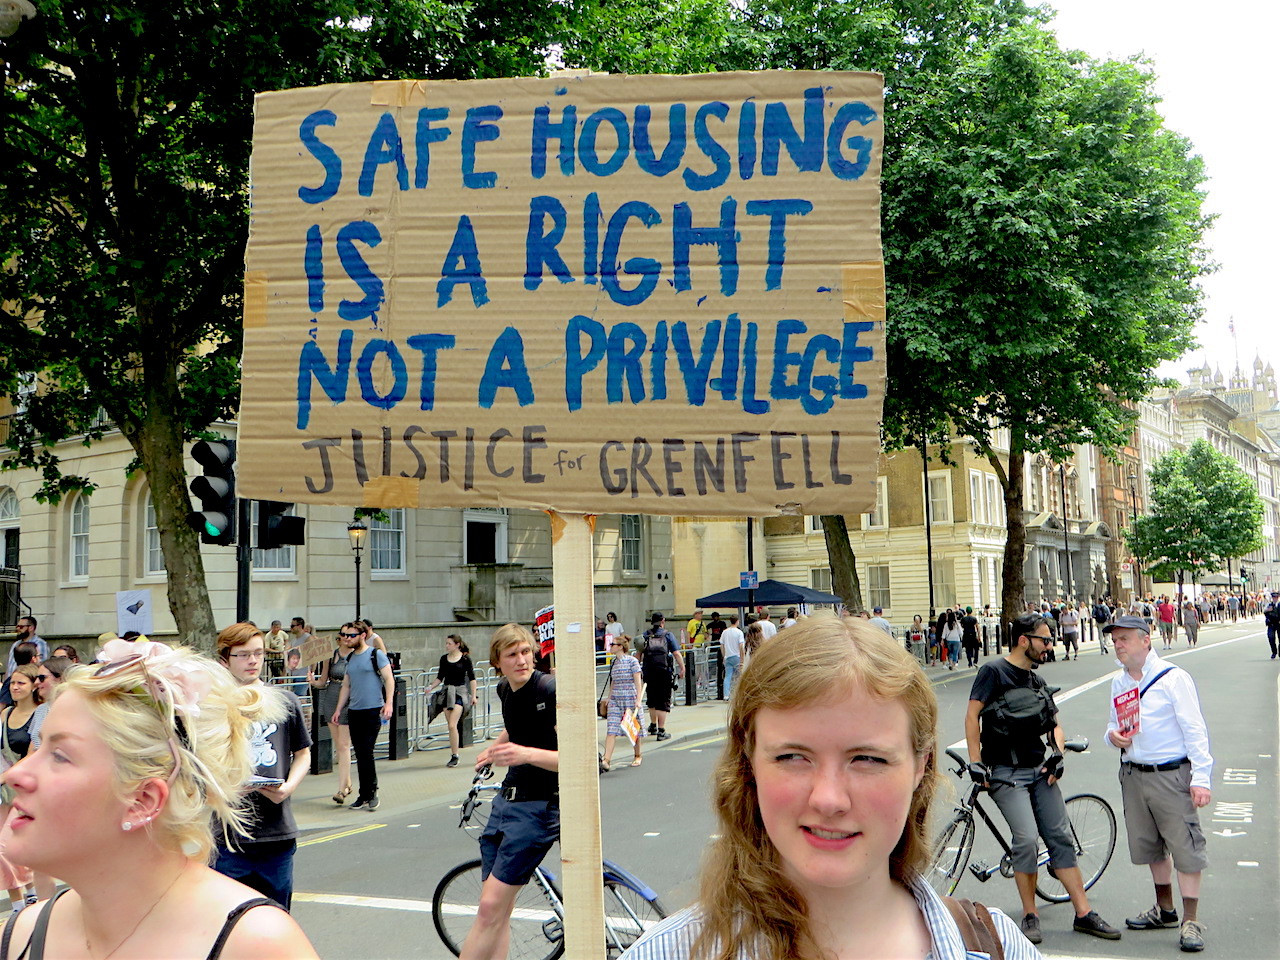 'Safe housing is a right not a privilege': a placard at the 'Protest Against Theresa May' outside Downing Street on June 17, 2017 (Photo: Andy Worthington).